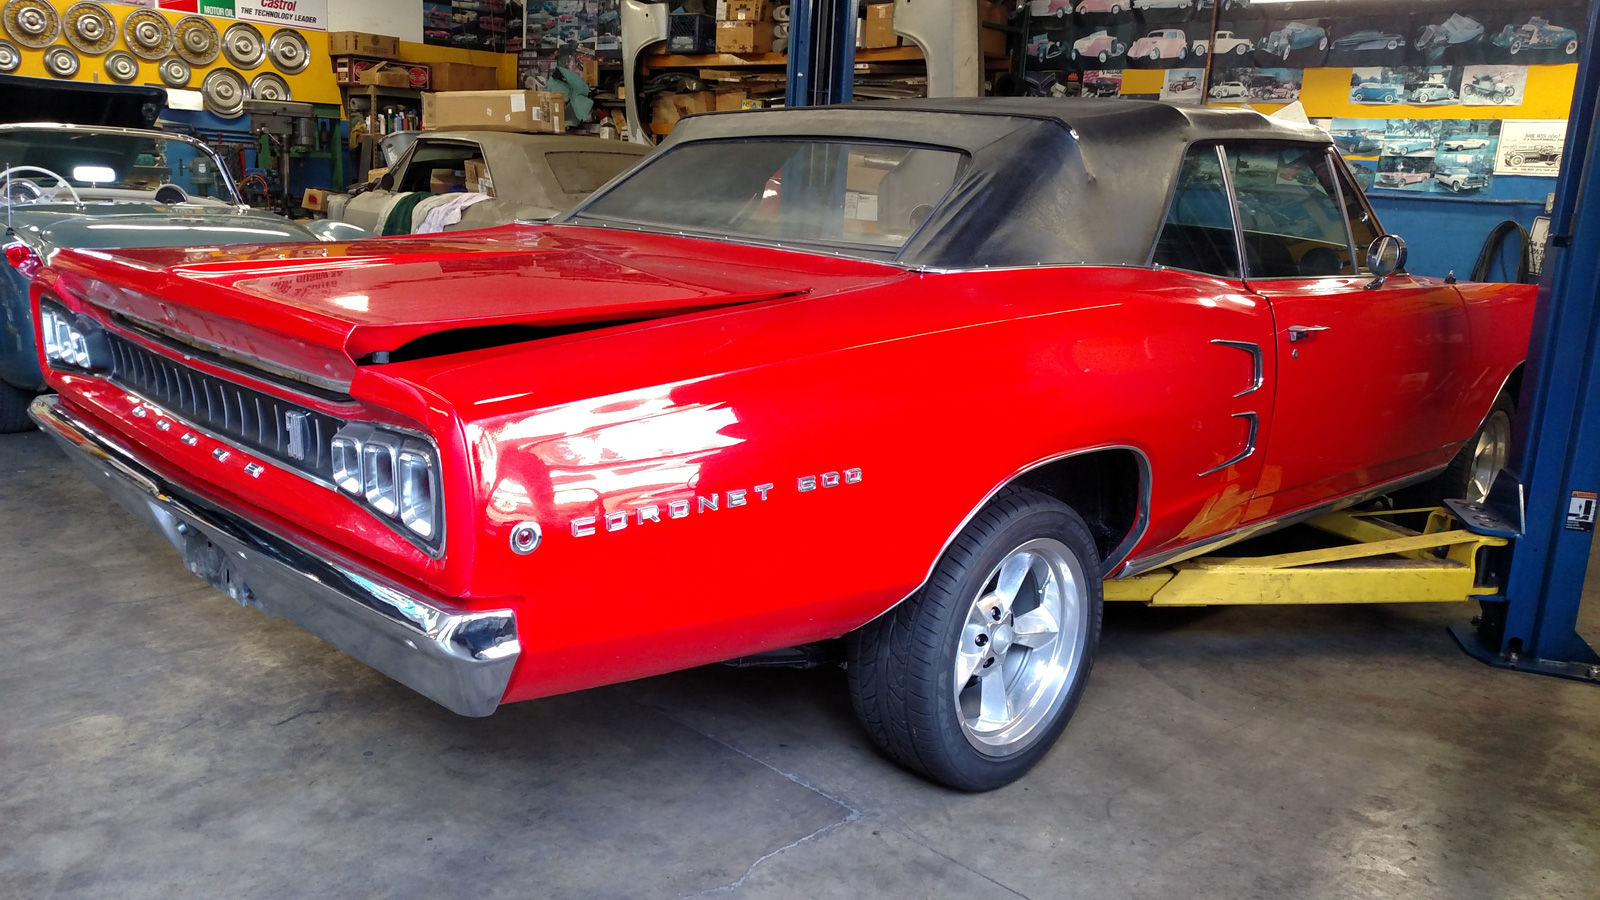 Dodge Coronet 500 at Tristar Automotive in Santa Rosa, CA.